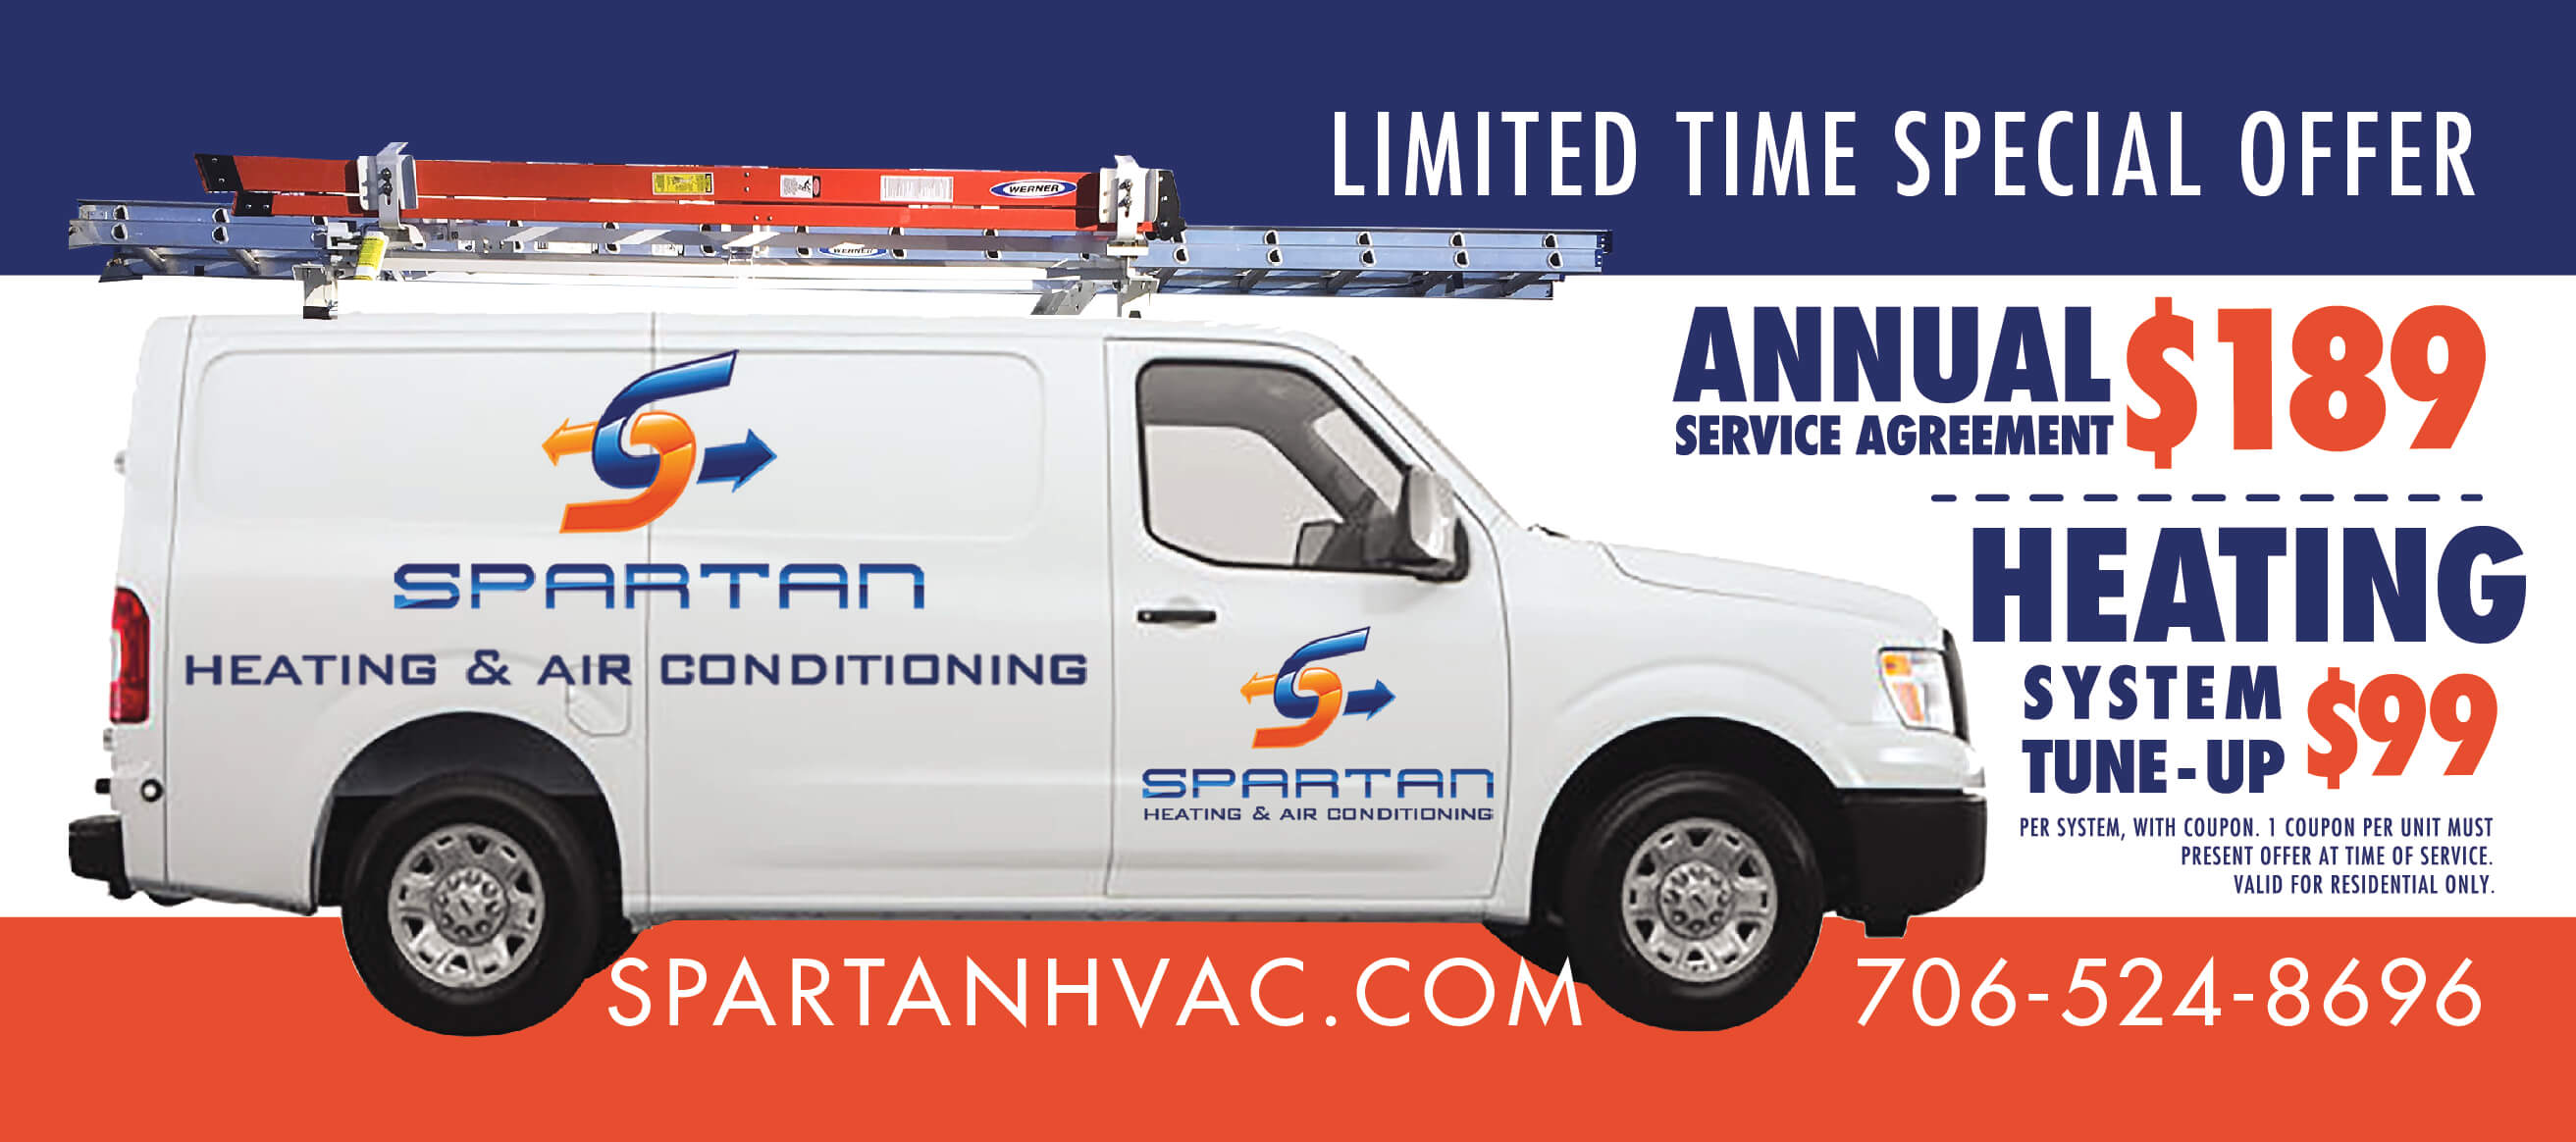 Spartan HVAC heating coupon 2018